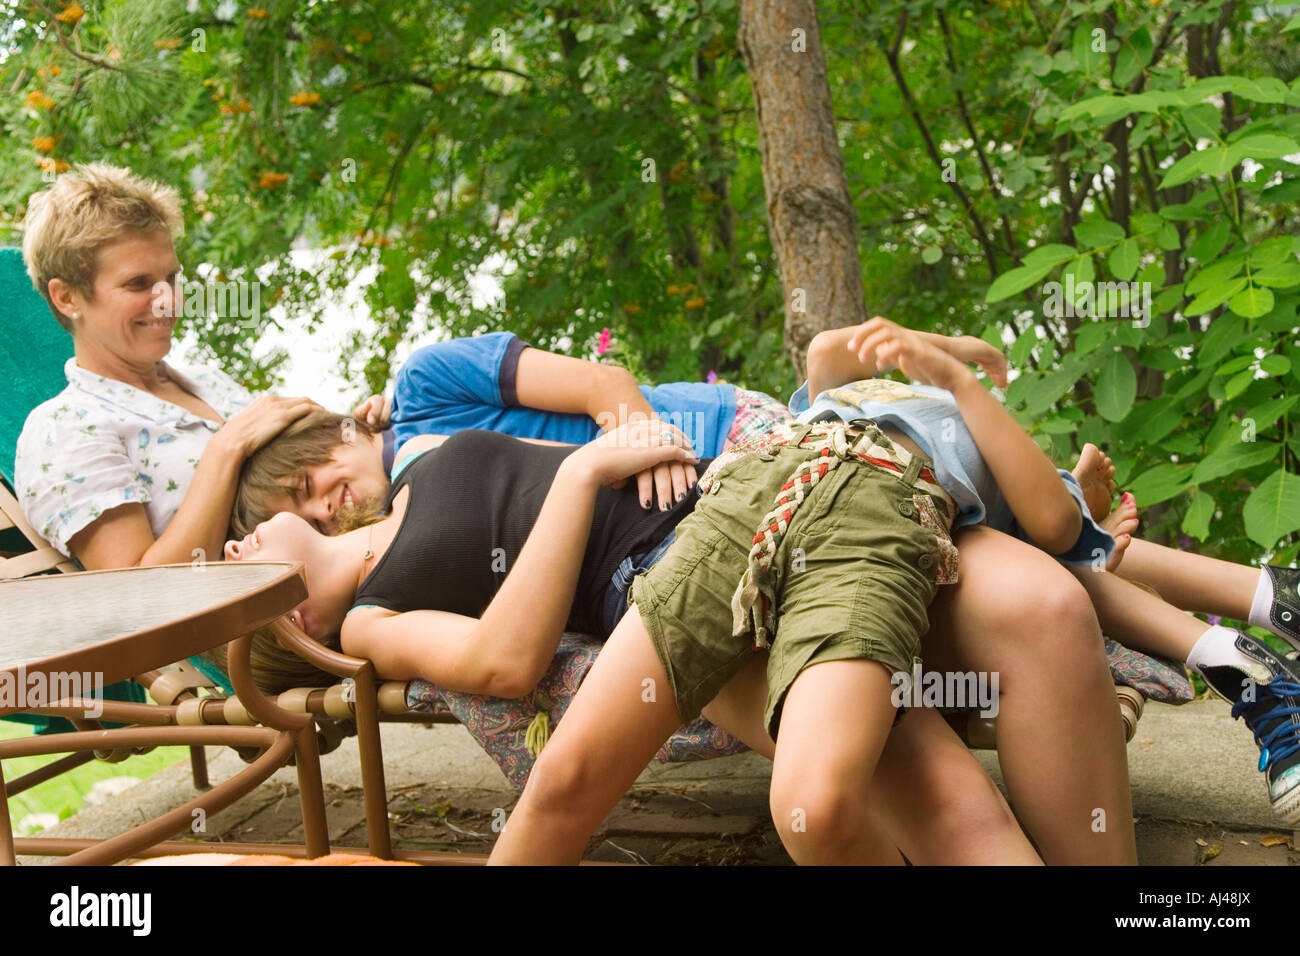 Children laying on mother in lounge chair Stock Photo